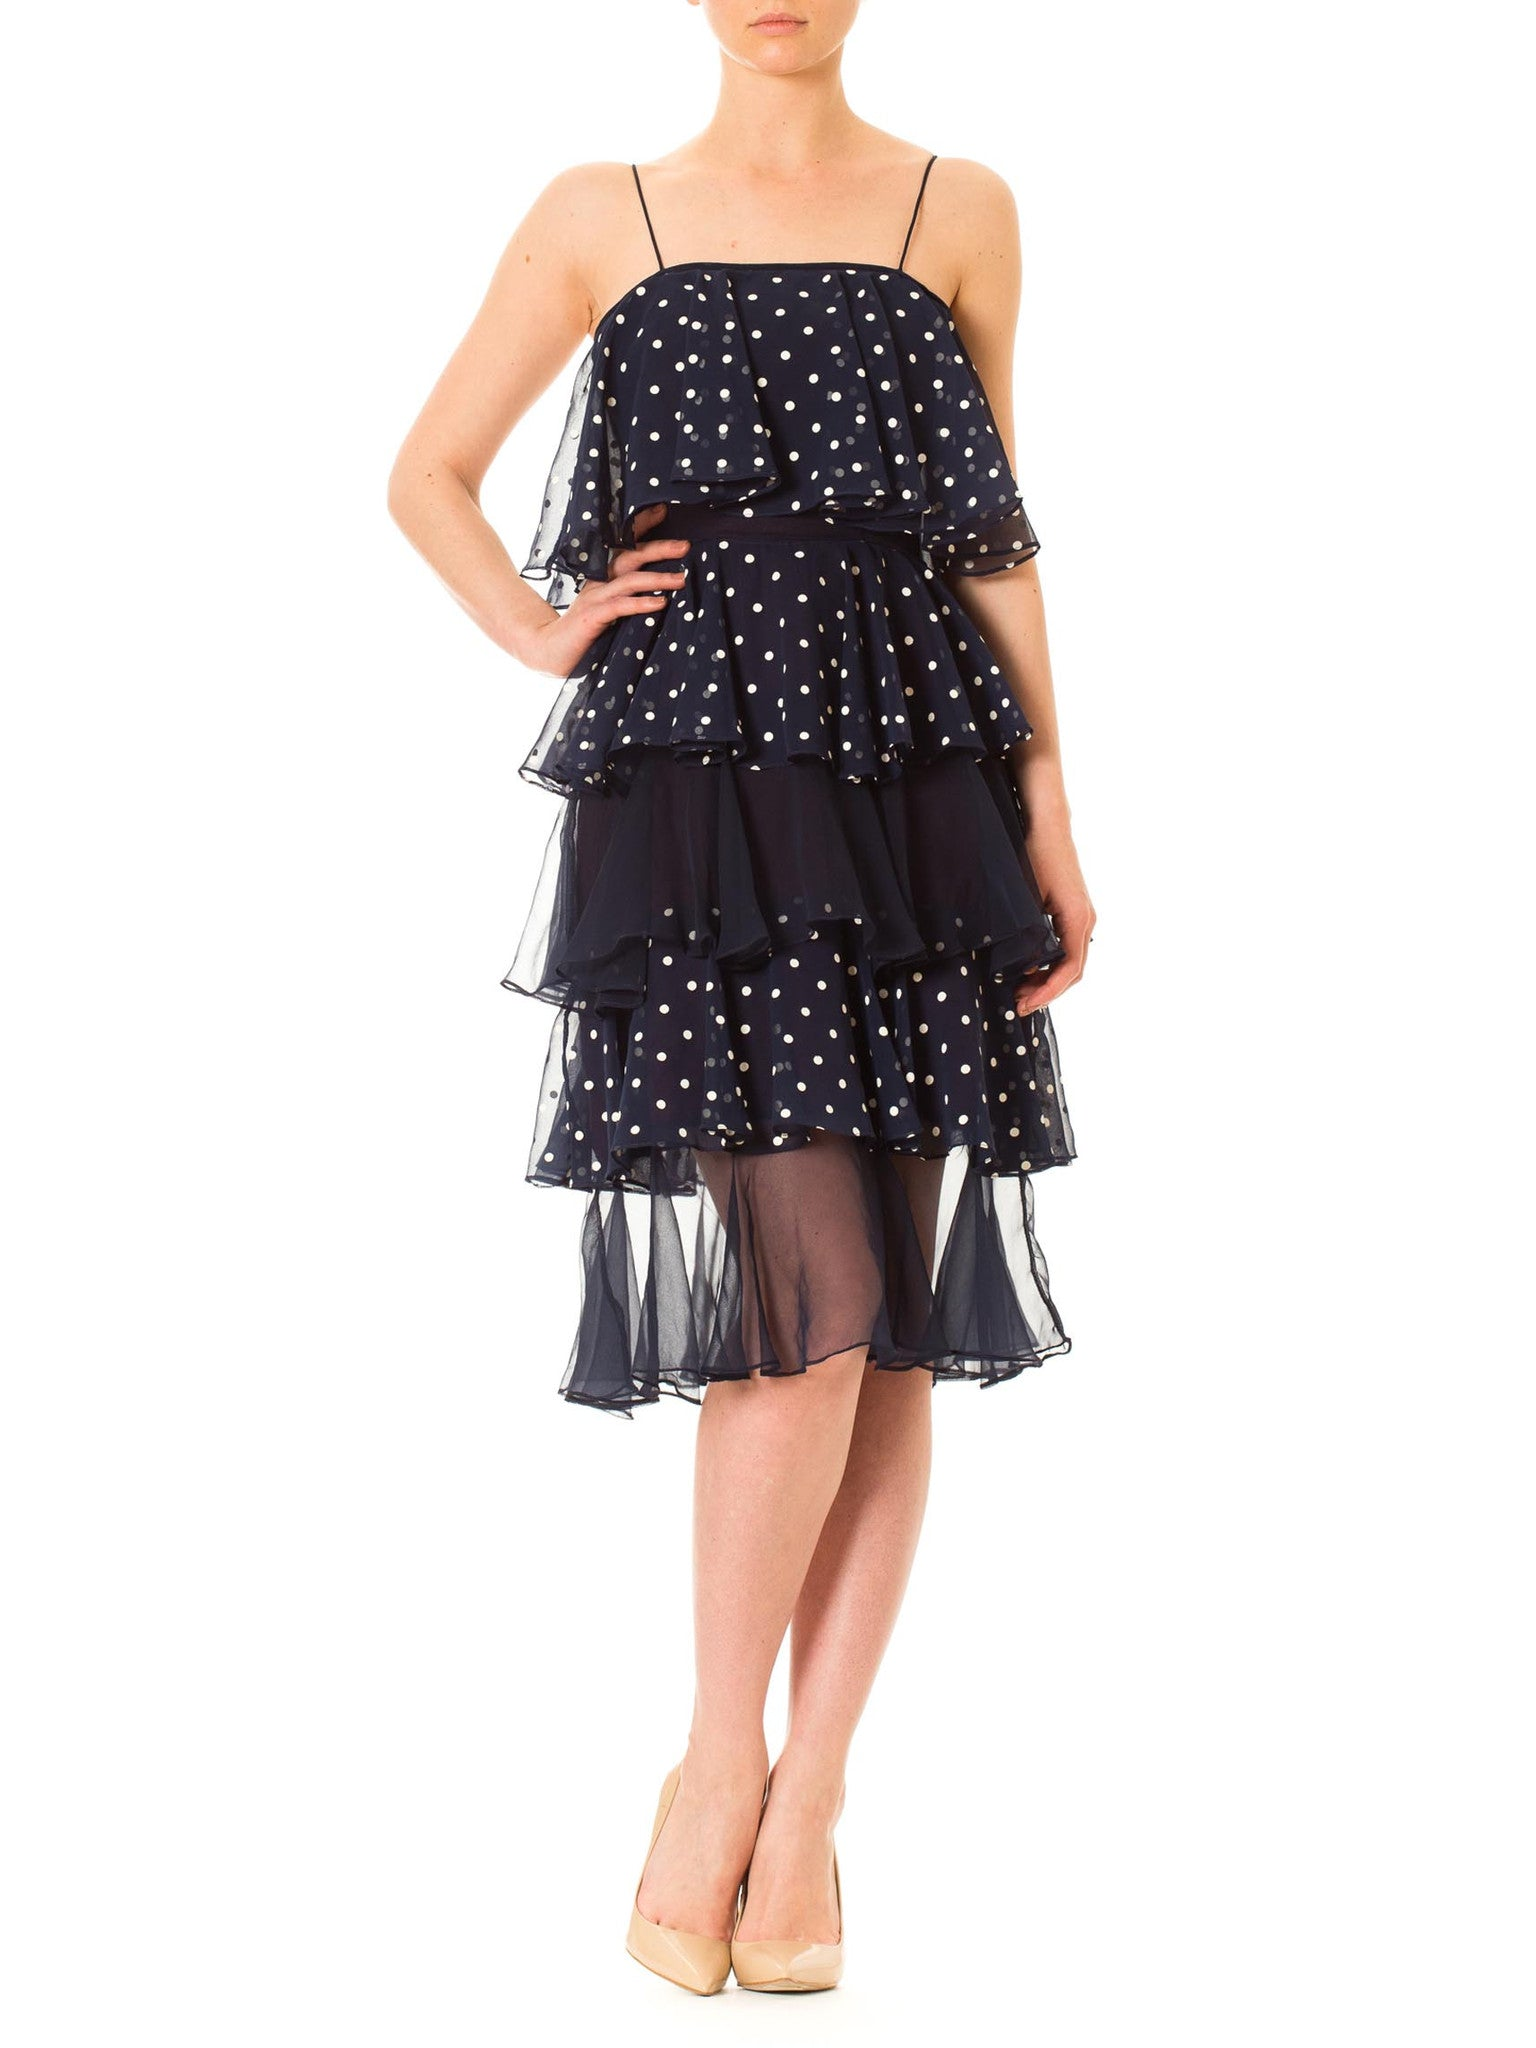 1970s Flowing Polka Dots Spaghetti Strap Chiffon Dress with Ruffles